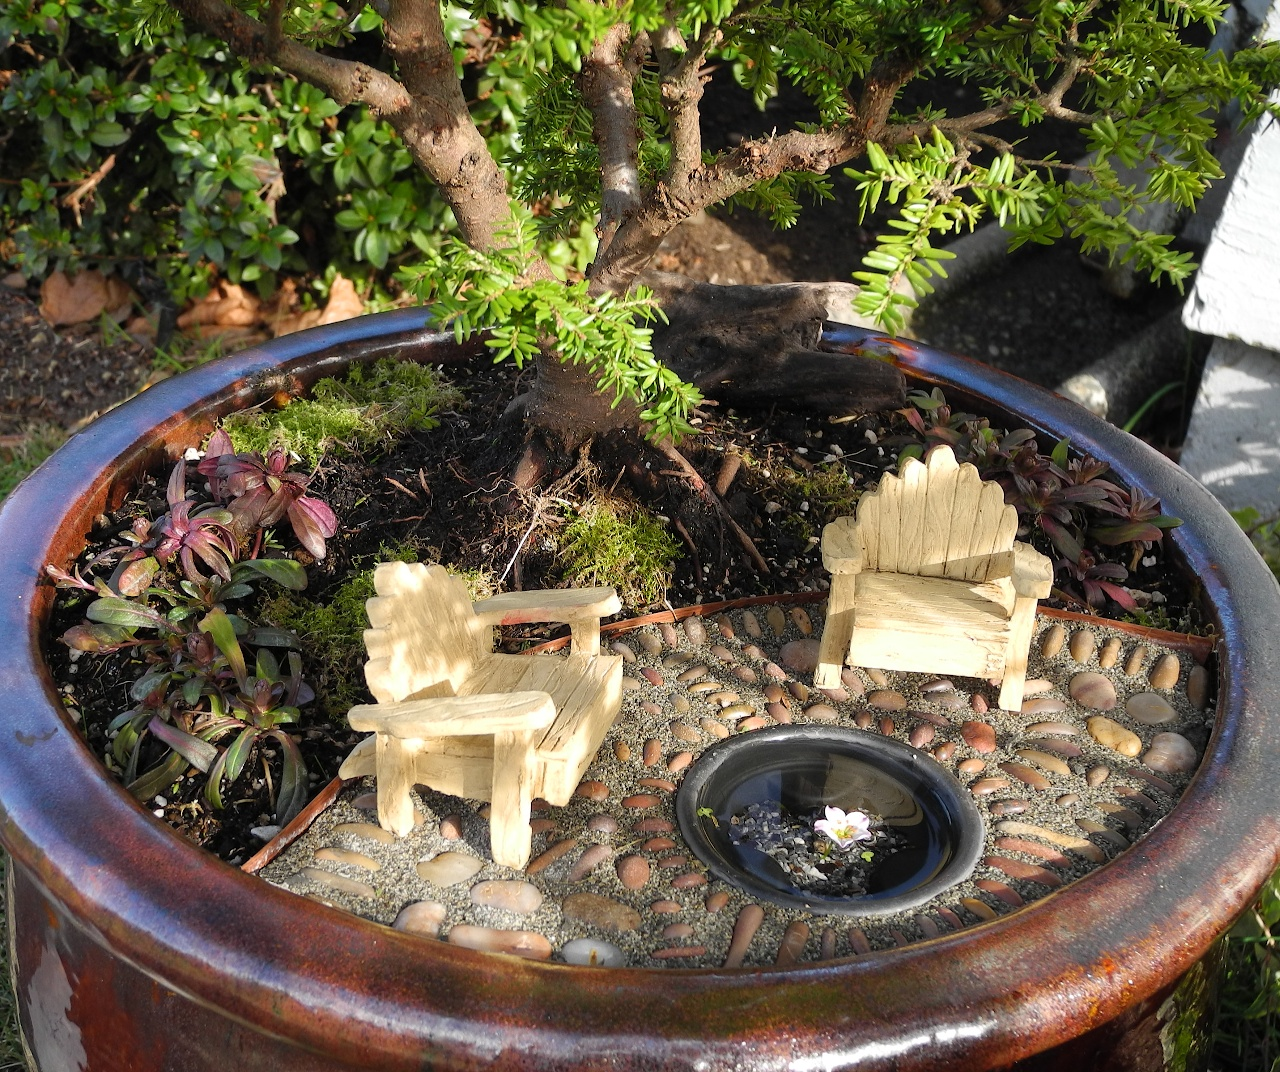 lounging chairs made of light wooden material, tiny figurines placed on pebbled surface, near miniature artificial pond, succulents and a bonsai tree